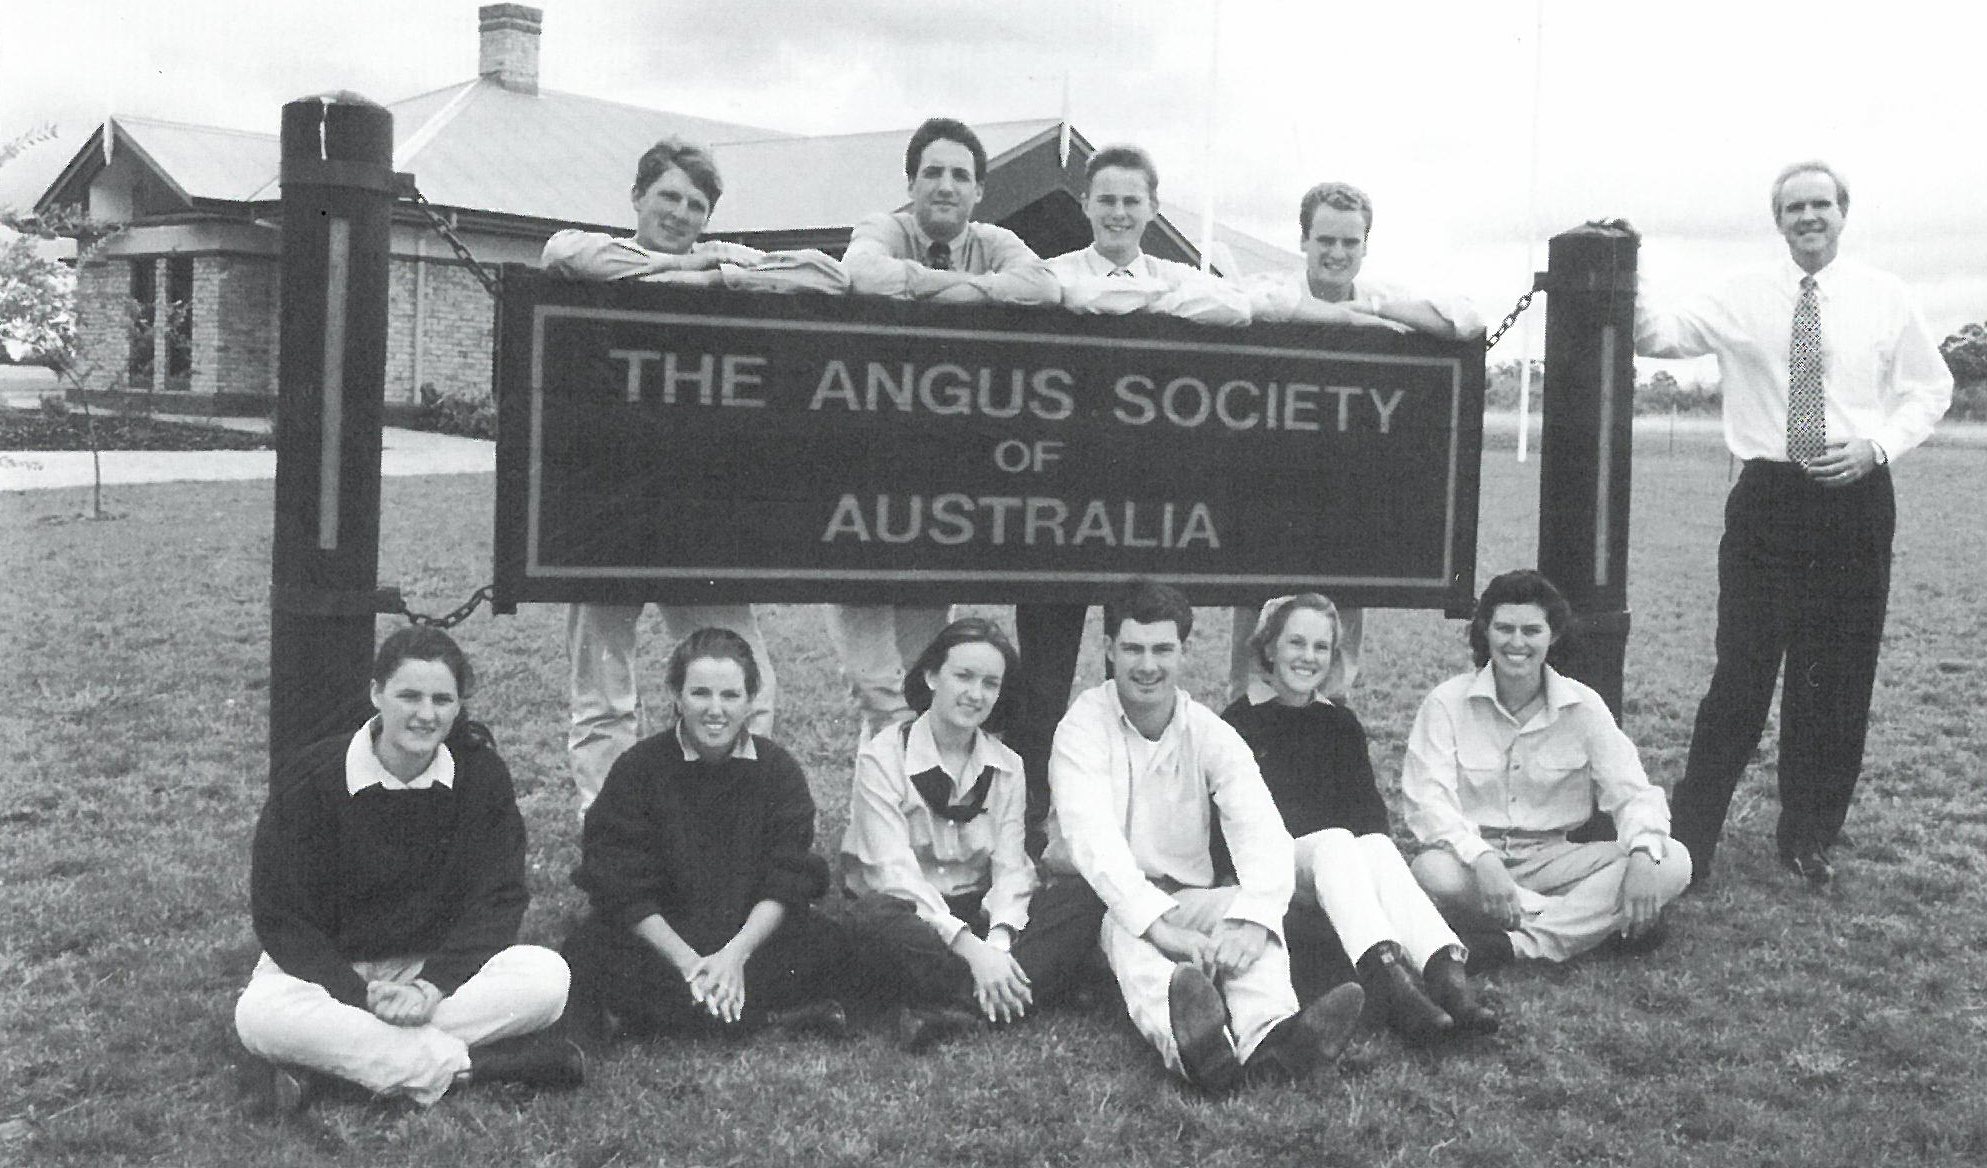 The first Angus Youth Management Committee, pictured in 1996, Australian Angus Journal 1997